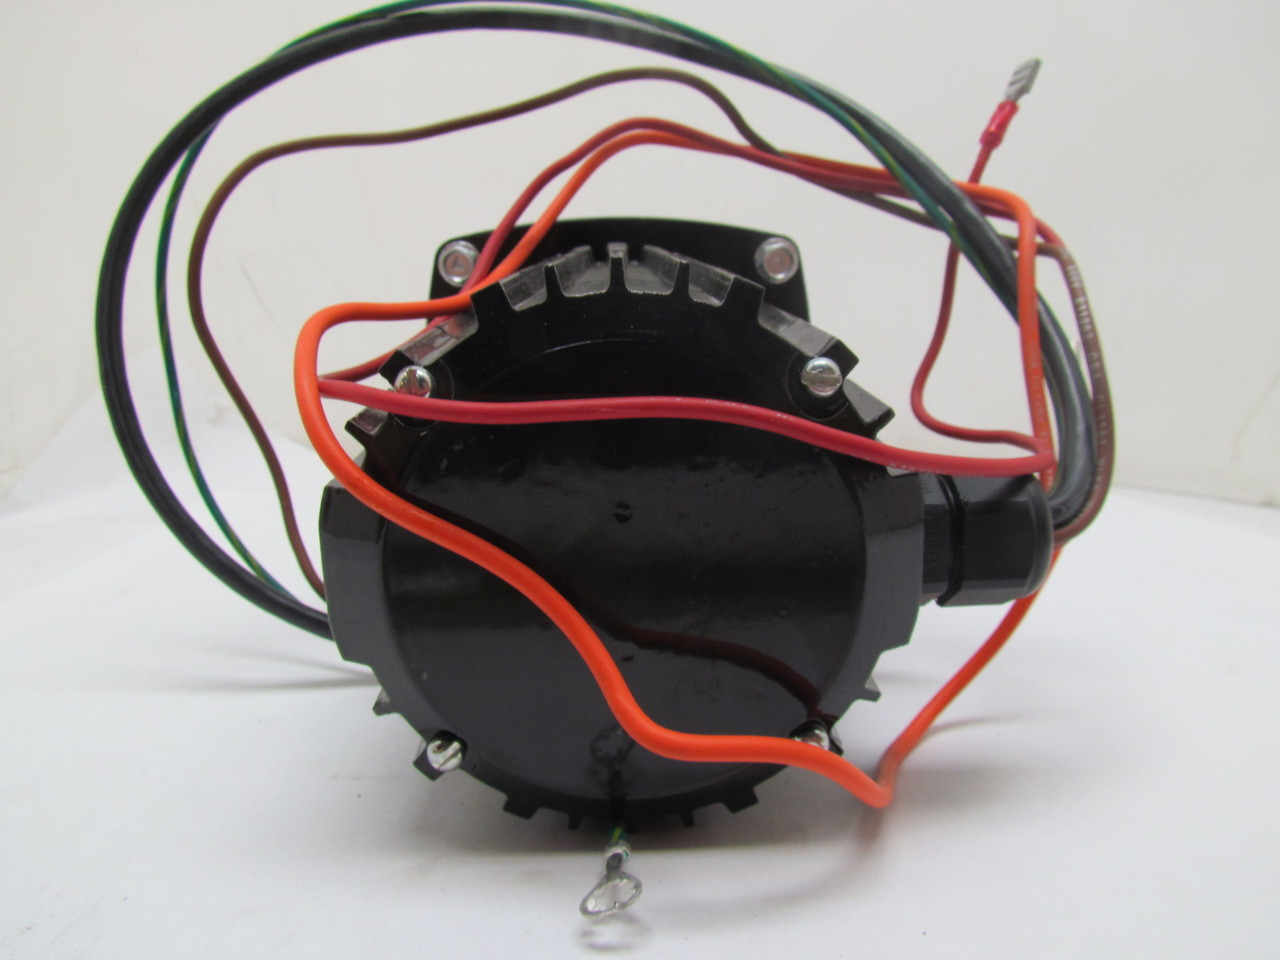 58762 bodine electric 34b6bebl f3 24v gearmotor 18amp 3 8hp 125rpm 201 ratio 9?resize\\\\\\\\\\\\\\\=665%2C499 bodine motor wiring diagram wiring diagram shrutiradio bodine bdl94c wiring diagram at gsmx.co